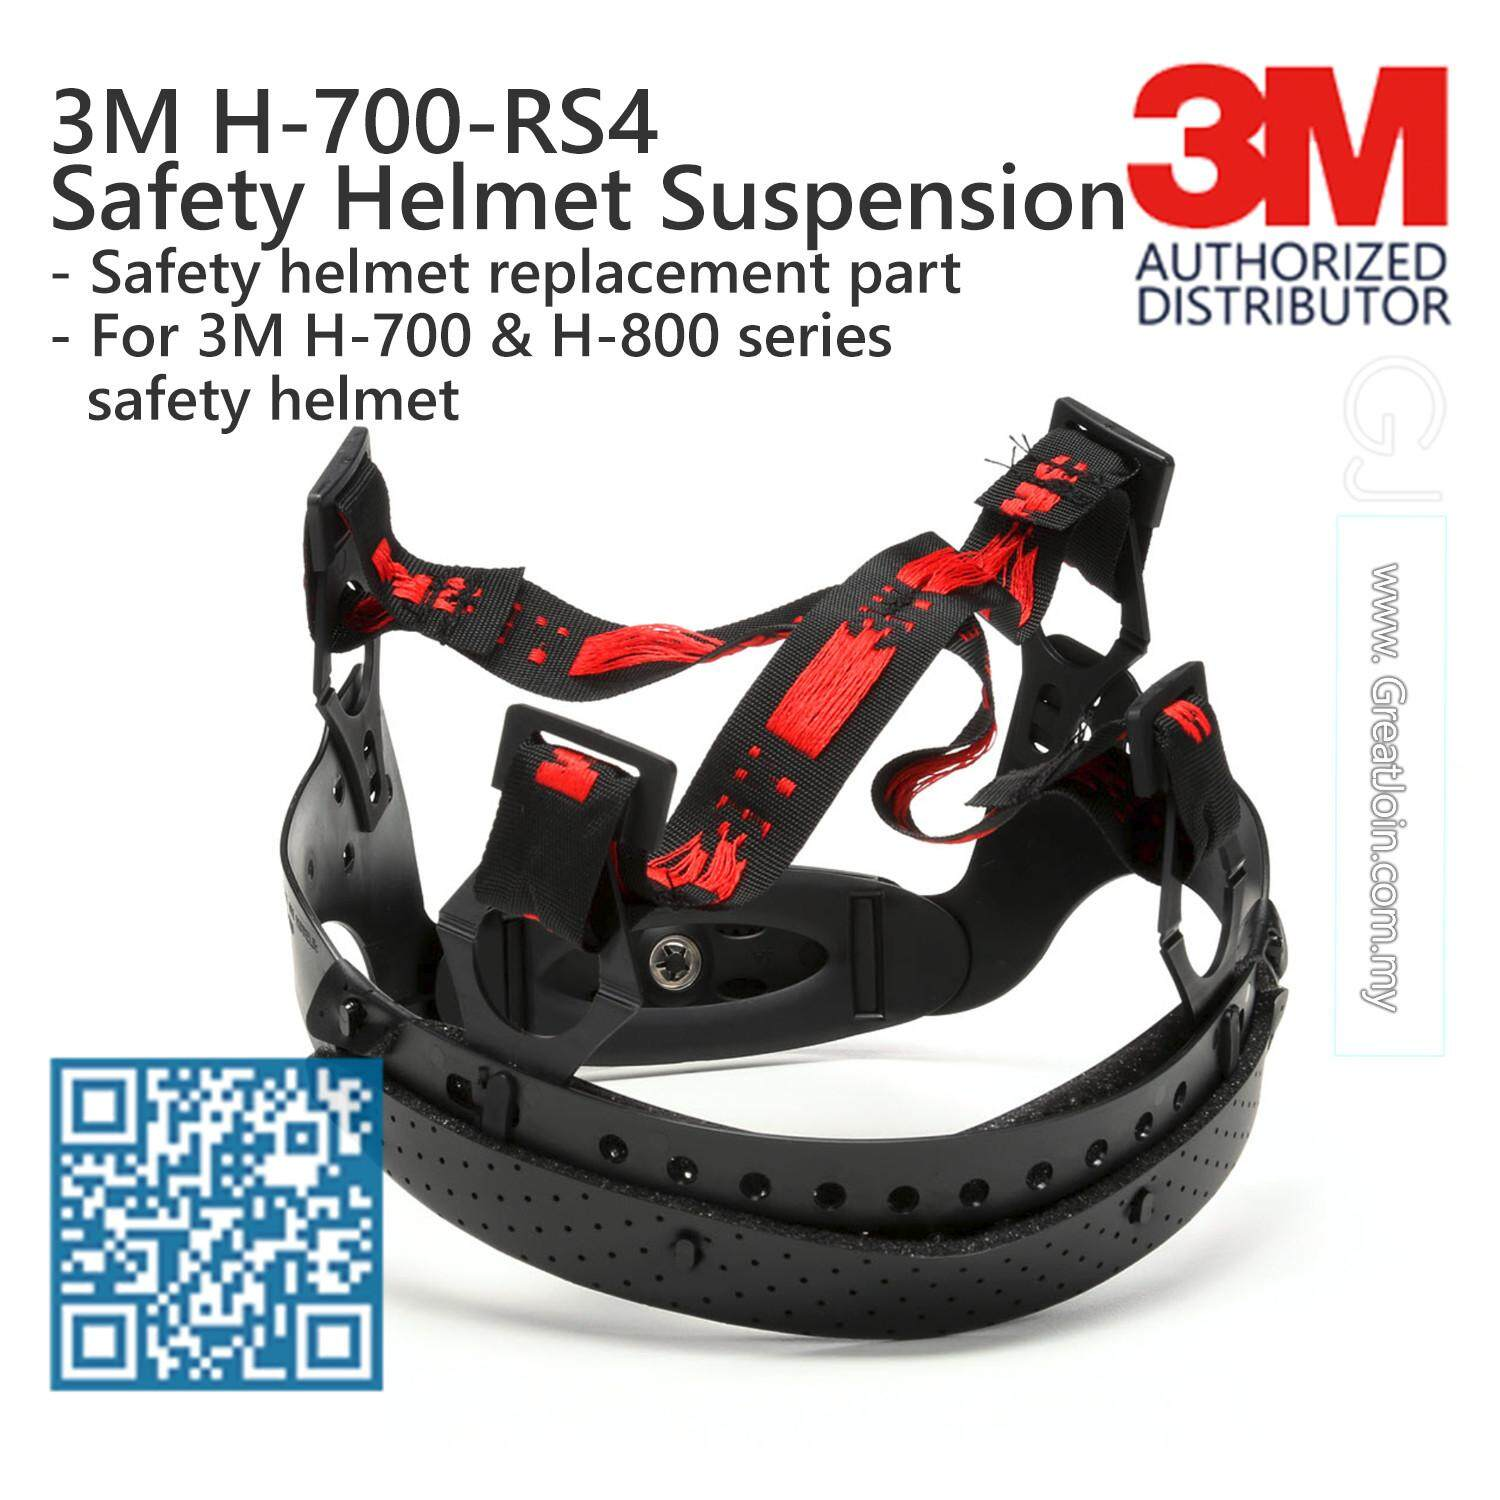 3M H-700-RS4 Safety Helmet Suspension Replacement/ Suspension Suitable for All 3M Helmet H-700 / H-800 Series [Suspension only, Not Including Safety Helmet] [1 piece]